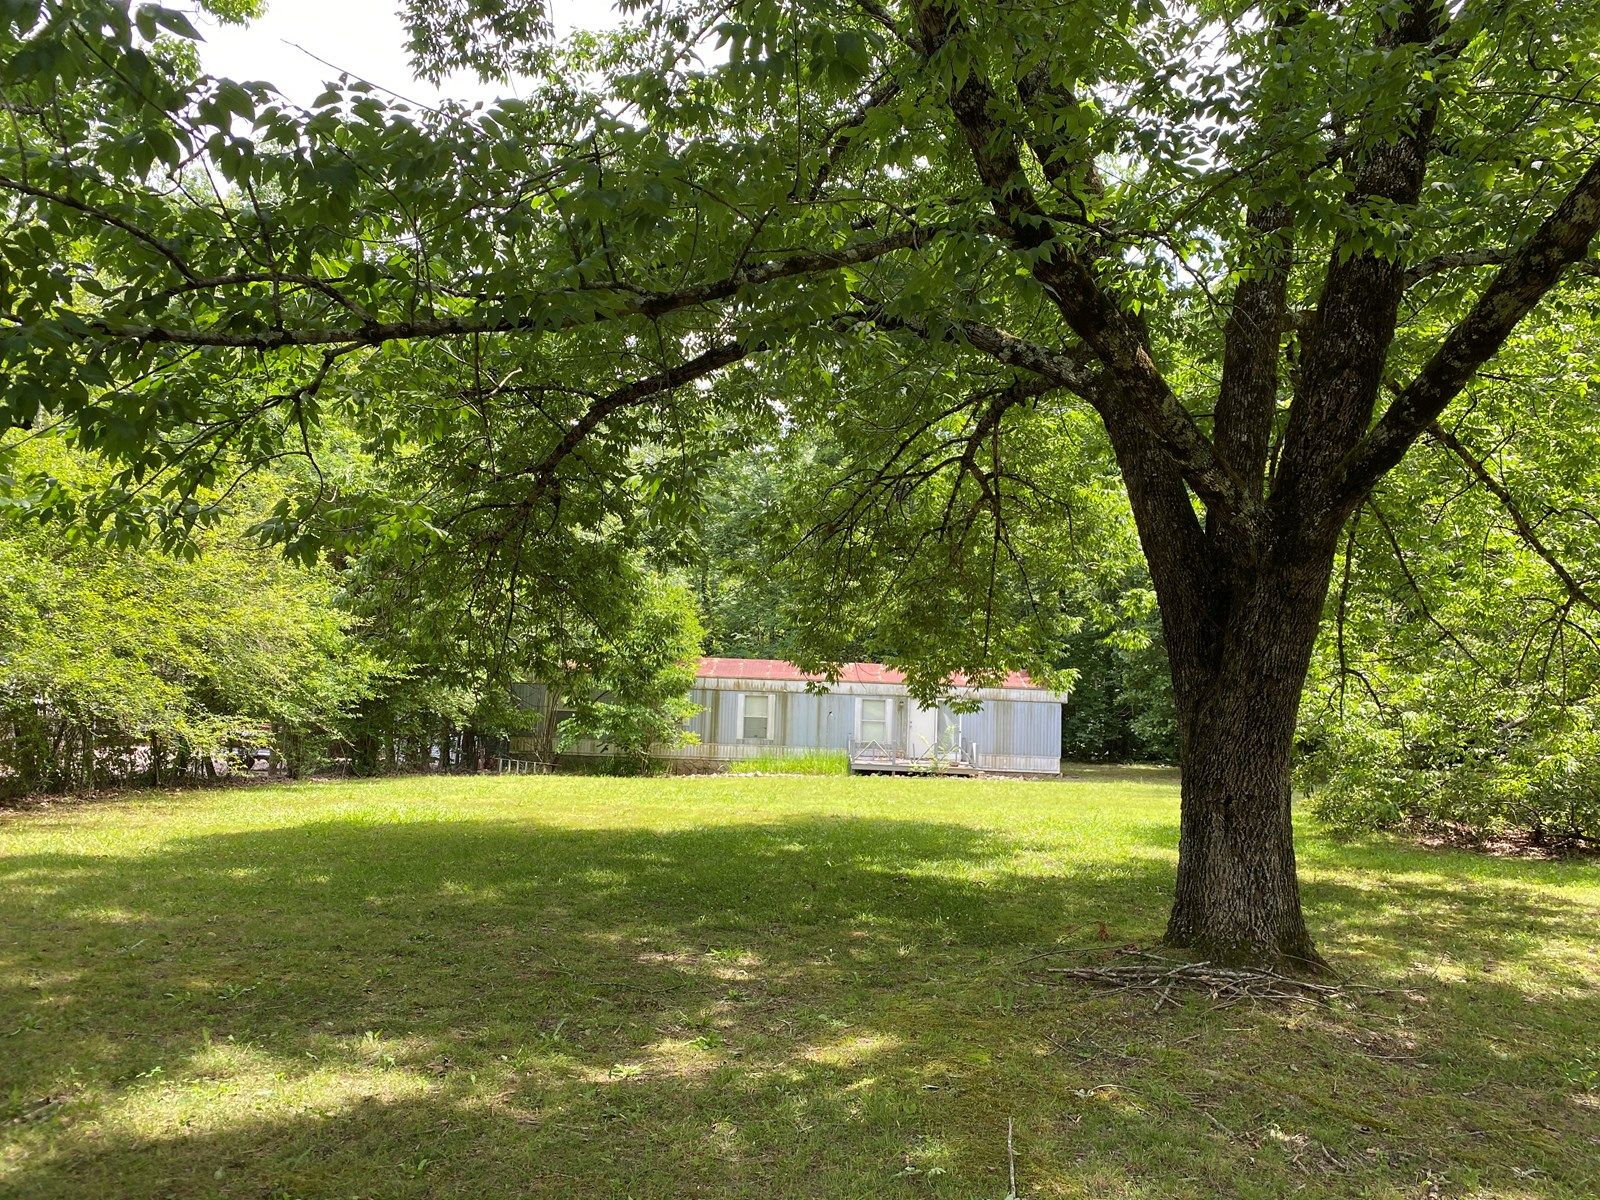 HOME NEAR TENNESSEE RIVER, LEVEL LOT, MOBILE HOME